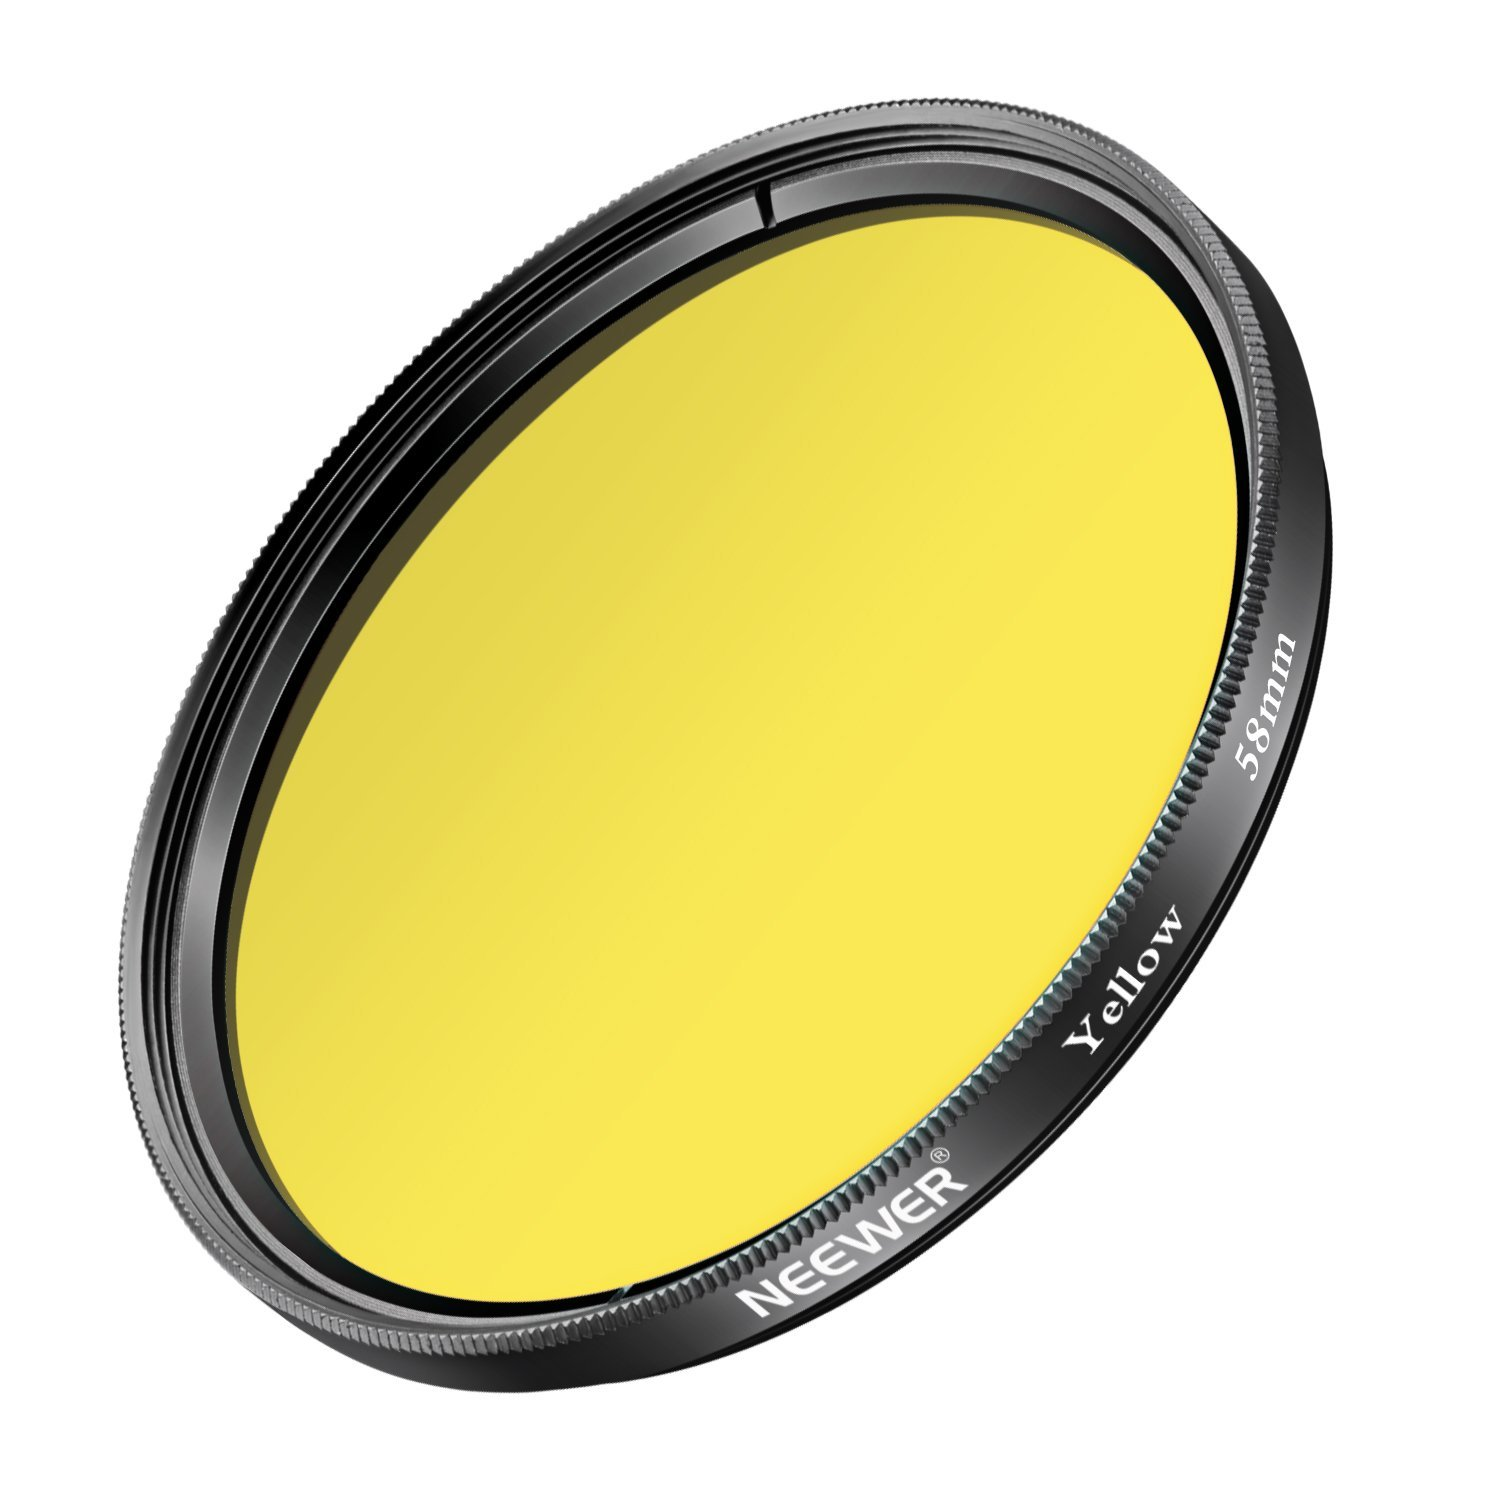 Neewer 58MM Yellow Lens Filter for Canon EOS Rebel T6i T6 T5i T5 T4i T3i SL1 DSLR Camera, Made of HD Optical Glass and Aluminum Alloy Frame